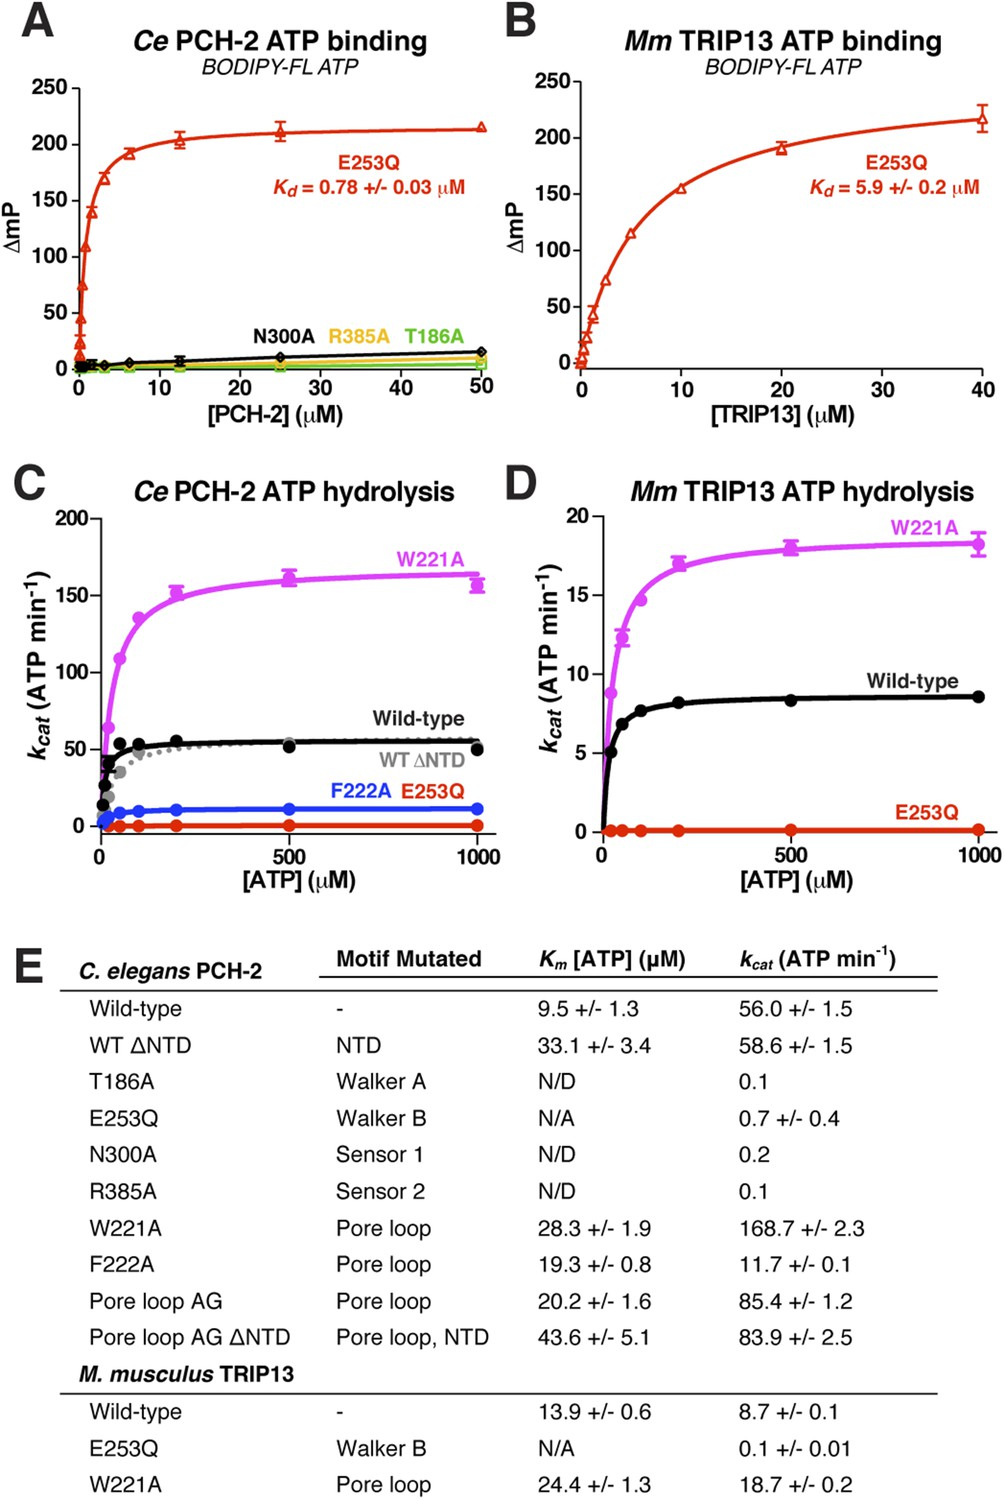 TRIP13 is a protein-remodeling AAA+ ATPase that catalyzes MAD2